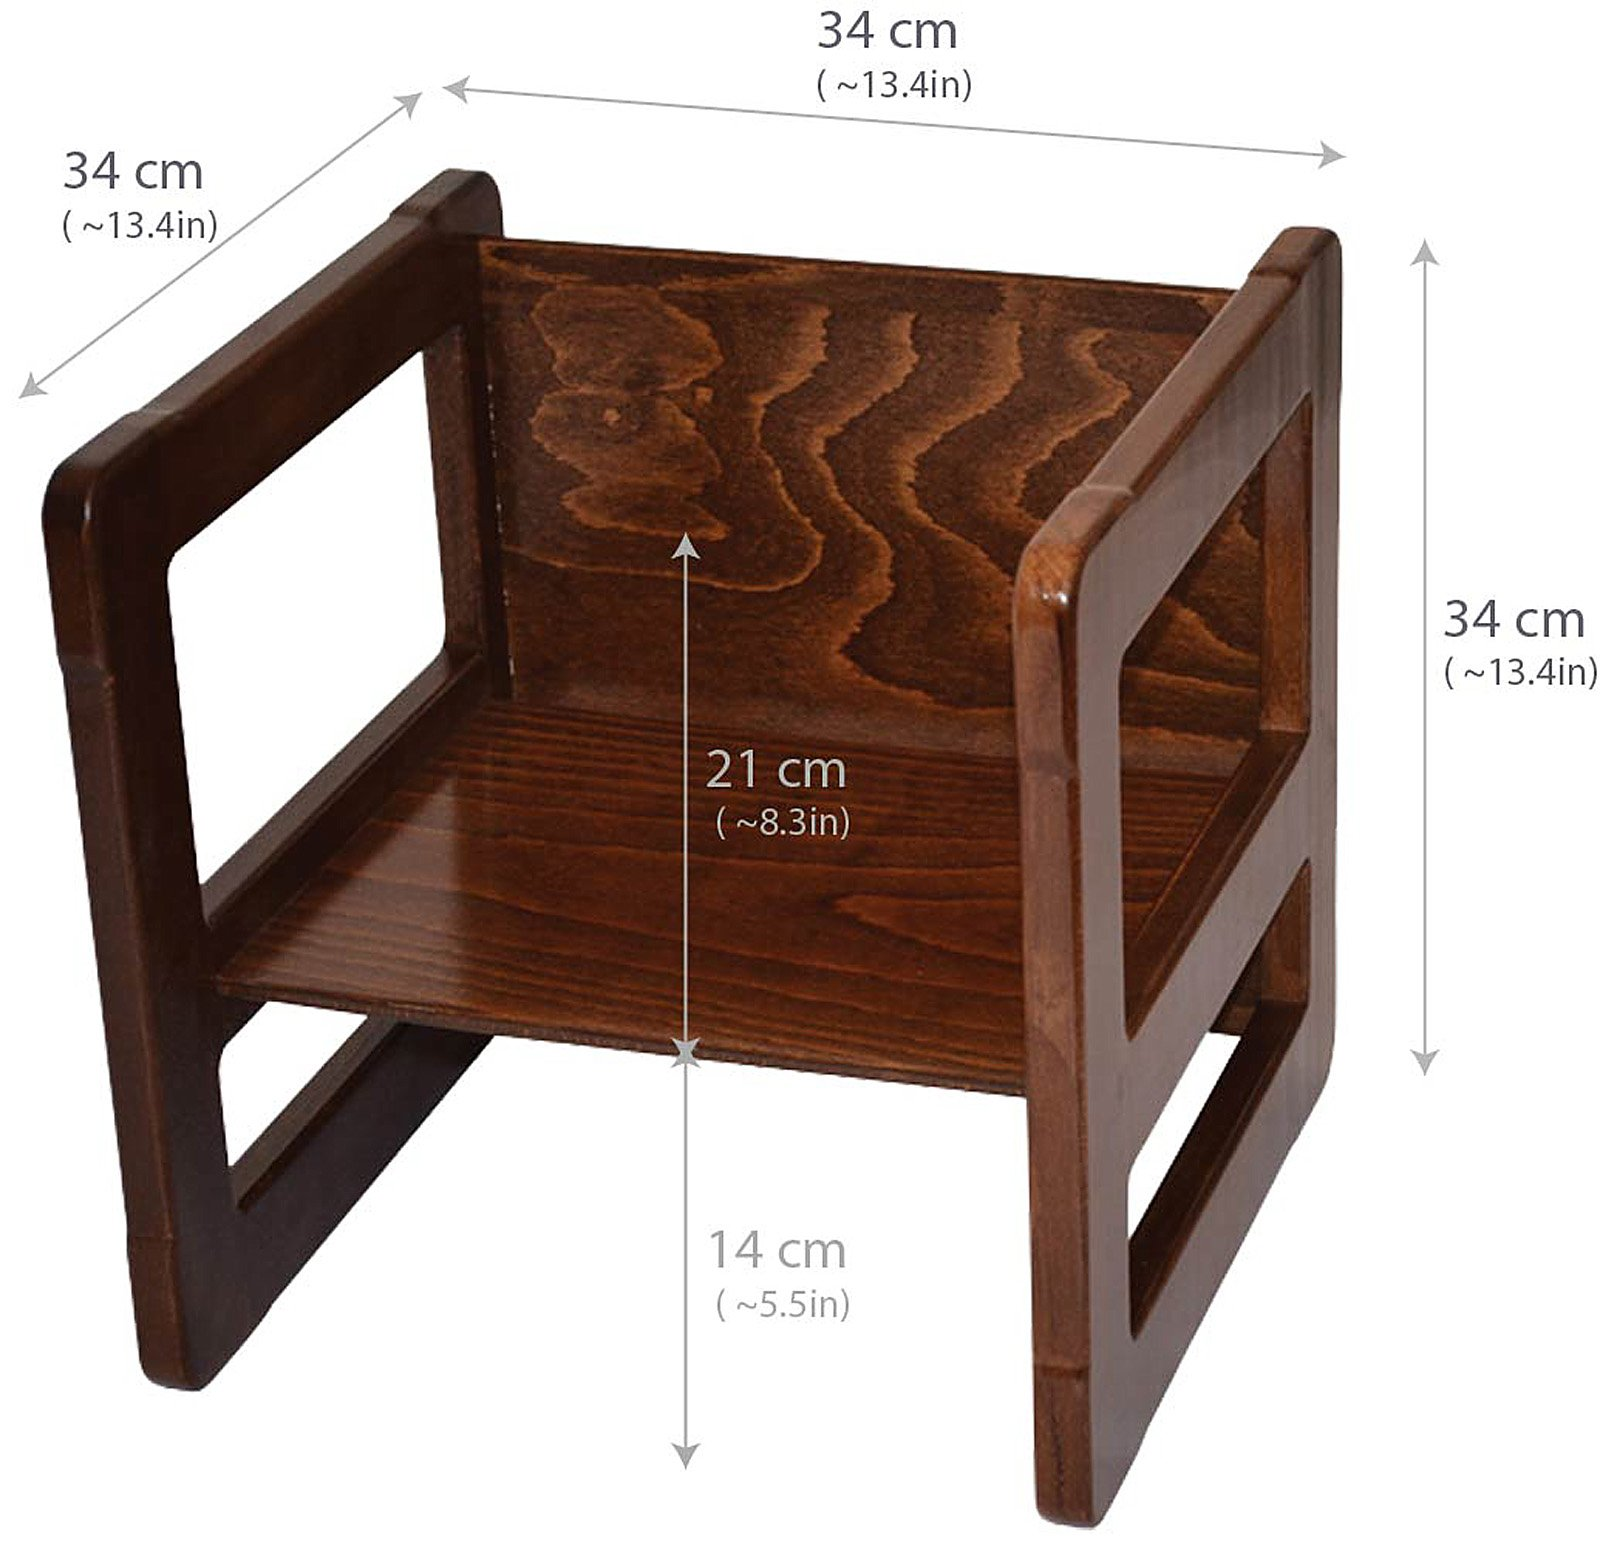 3 in 1 Childrens Multifunctional Furniture Set of 4, Two Small Chairs or Tables and One Small Bench or Table and One Large Bench or Table Beech Wood, Dark Stained by Obique Ltd (Image #5)